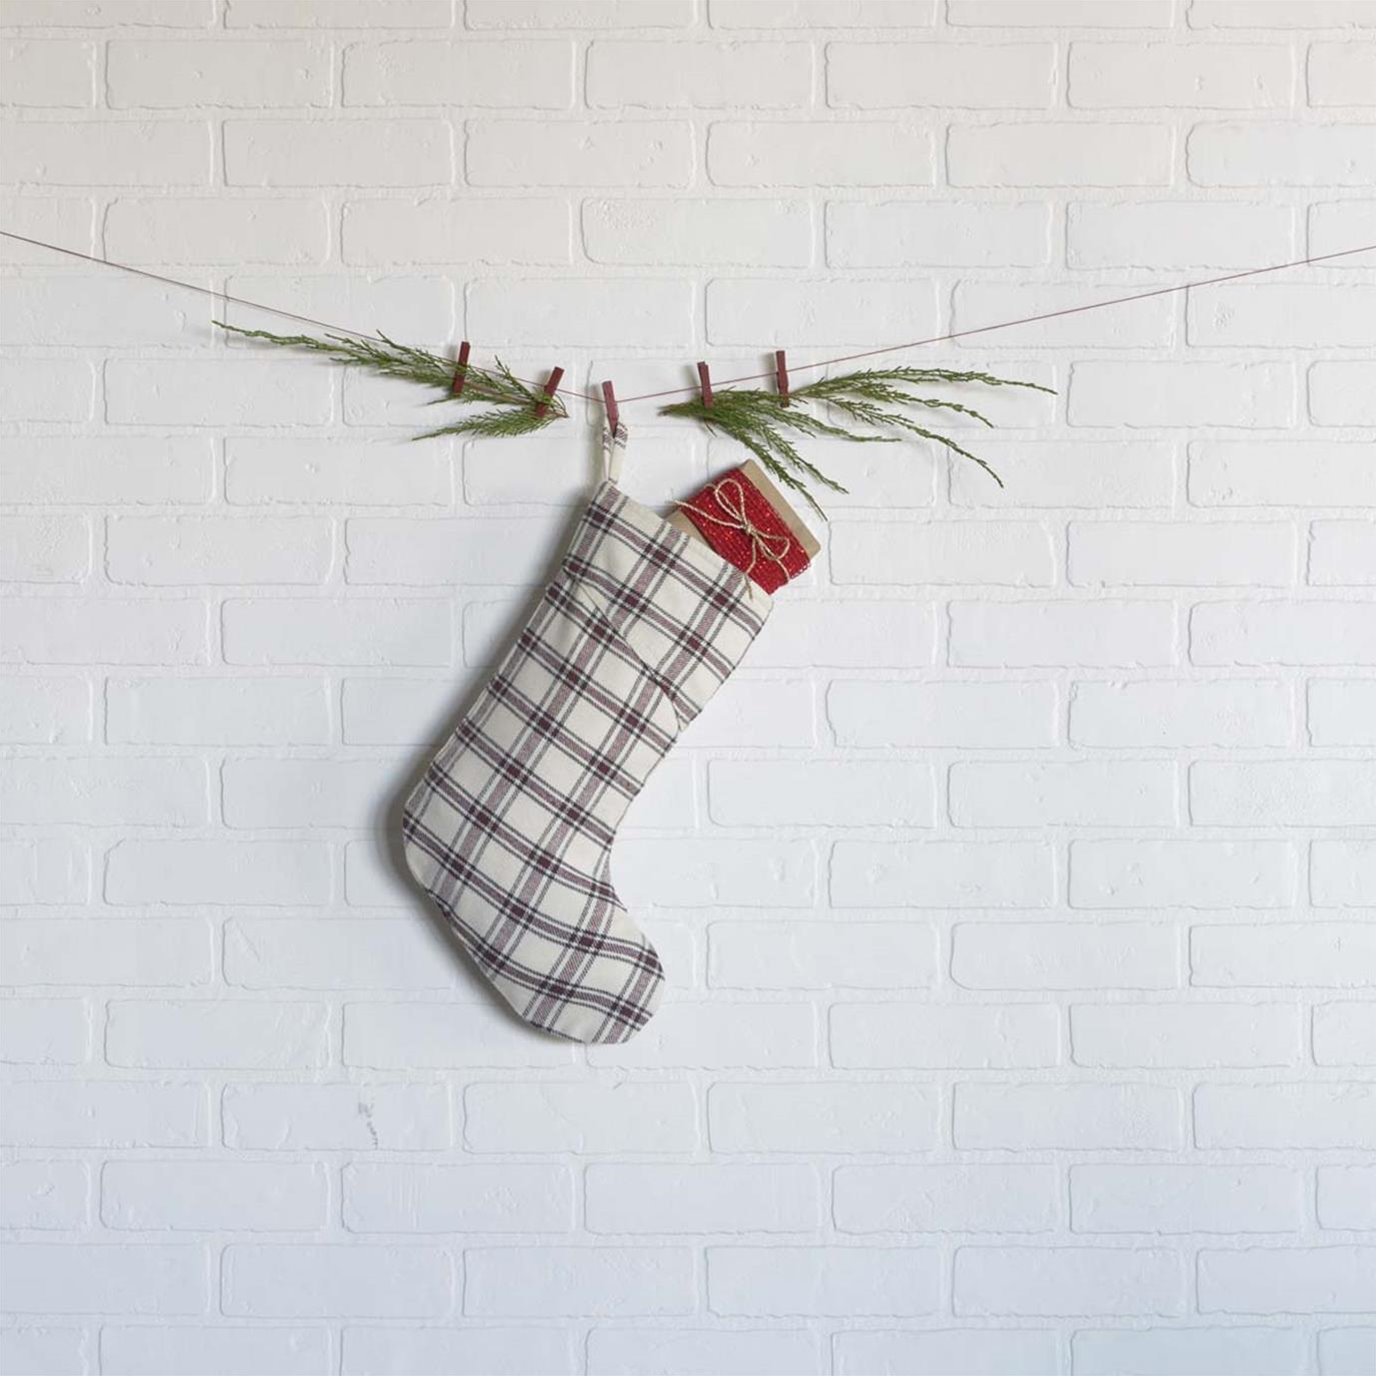 Amory Plaid Stocking 11x15